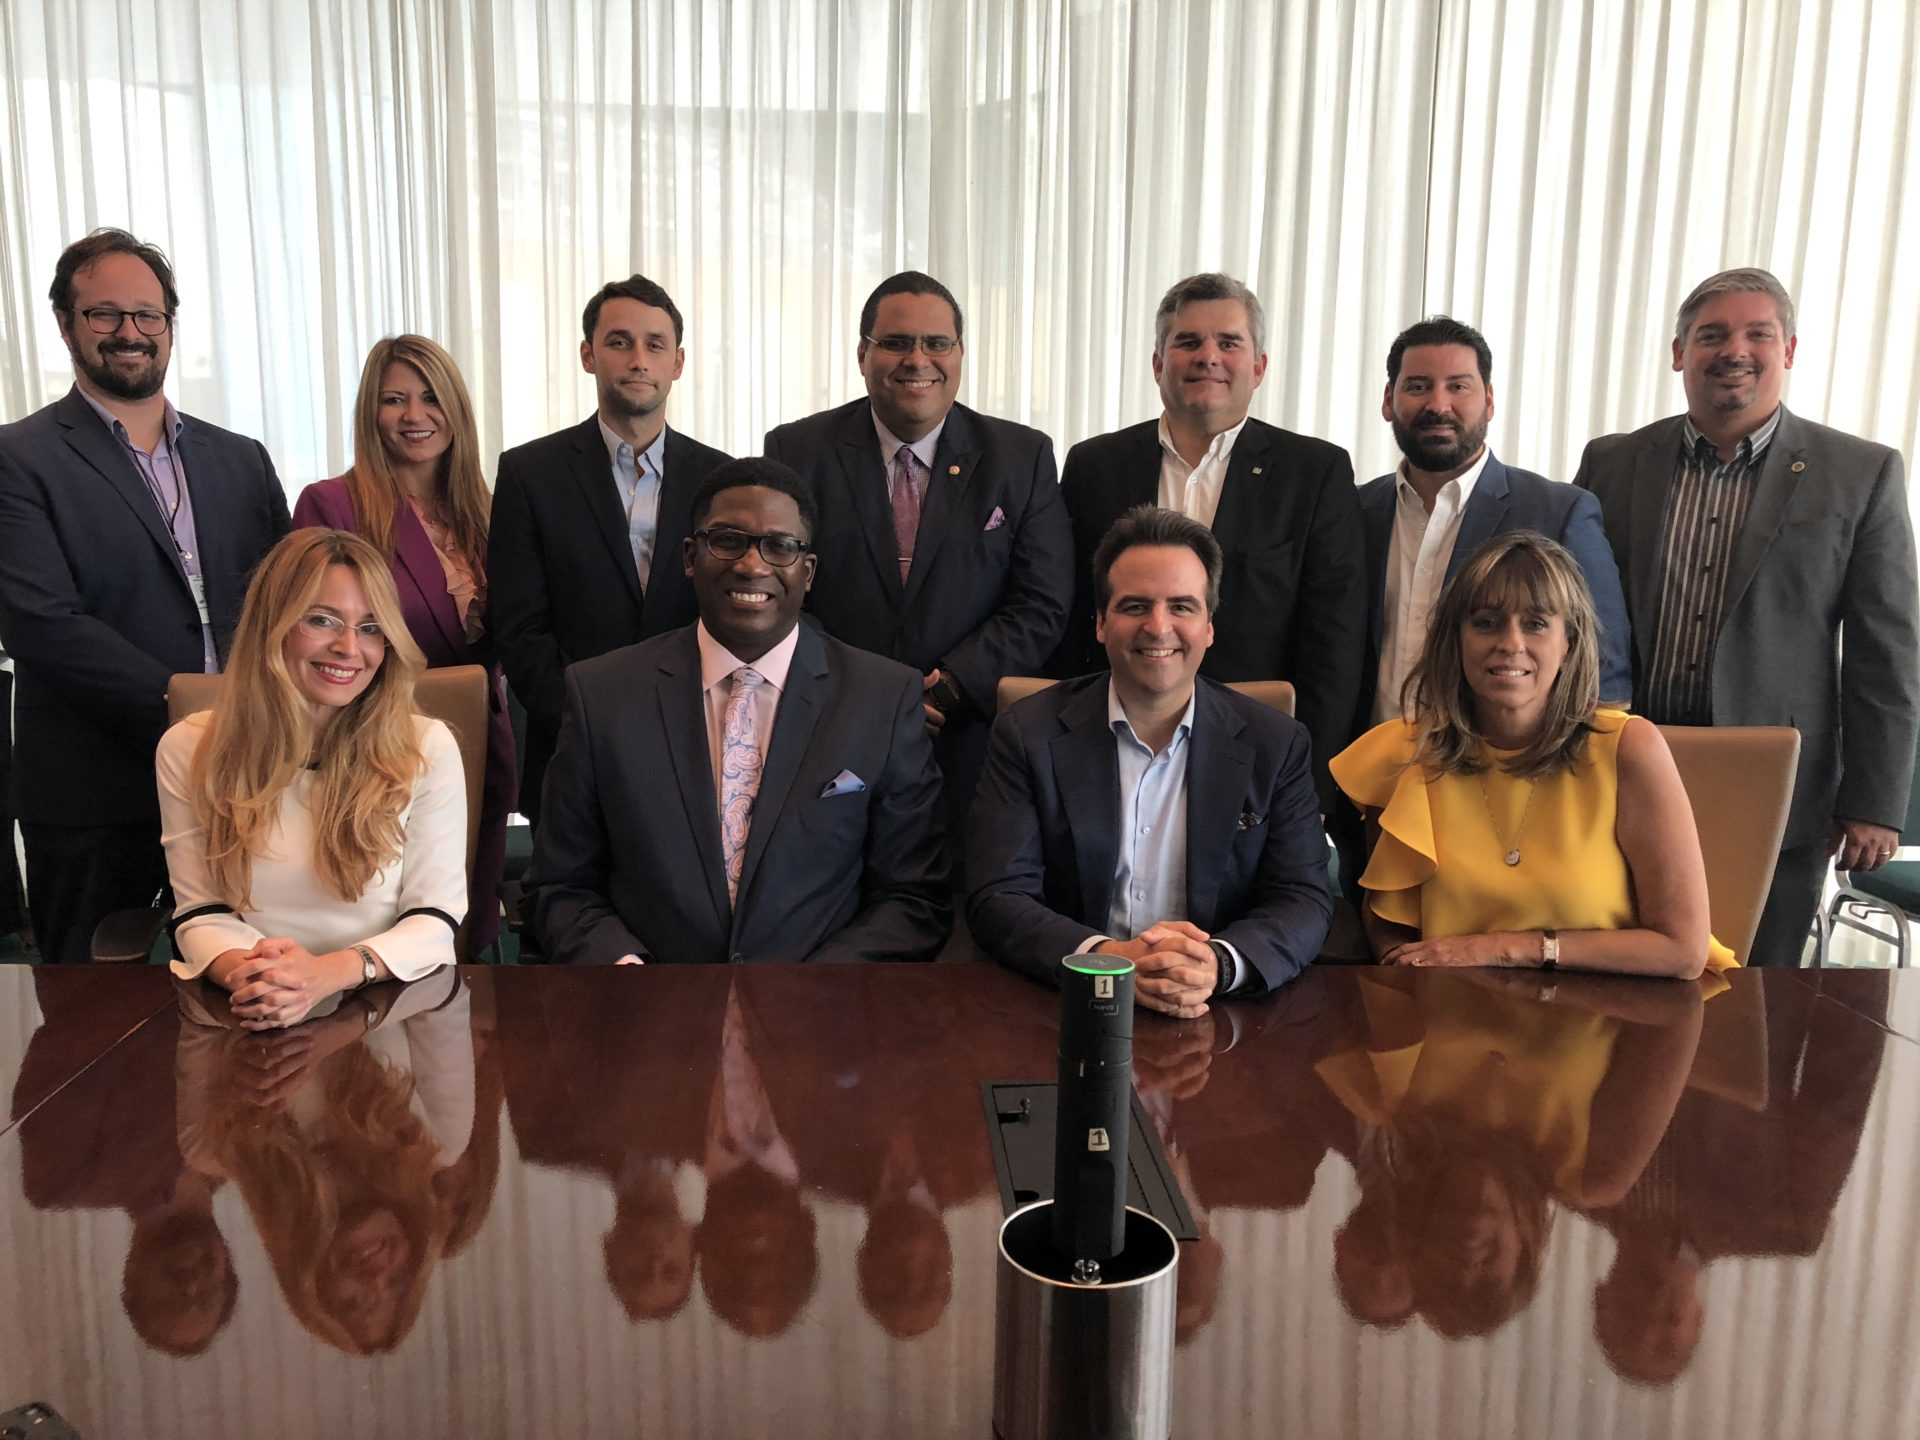 Invest Puerto Rico's (InvestPR) board announced Thursday the appointment of Rodrick T. Miller as its CEO, to lead the entity's mission in attracting new business and investment capital to the island